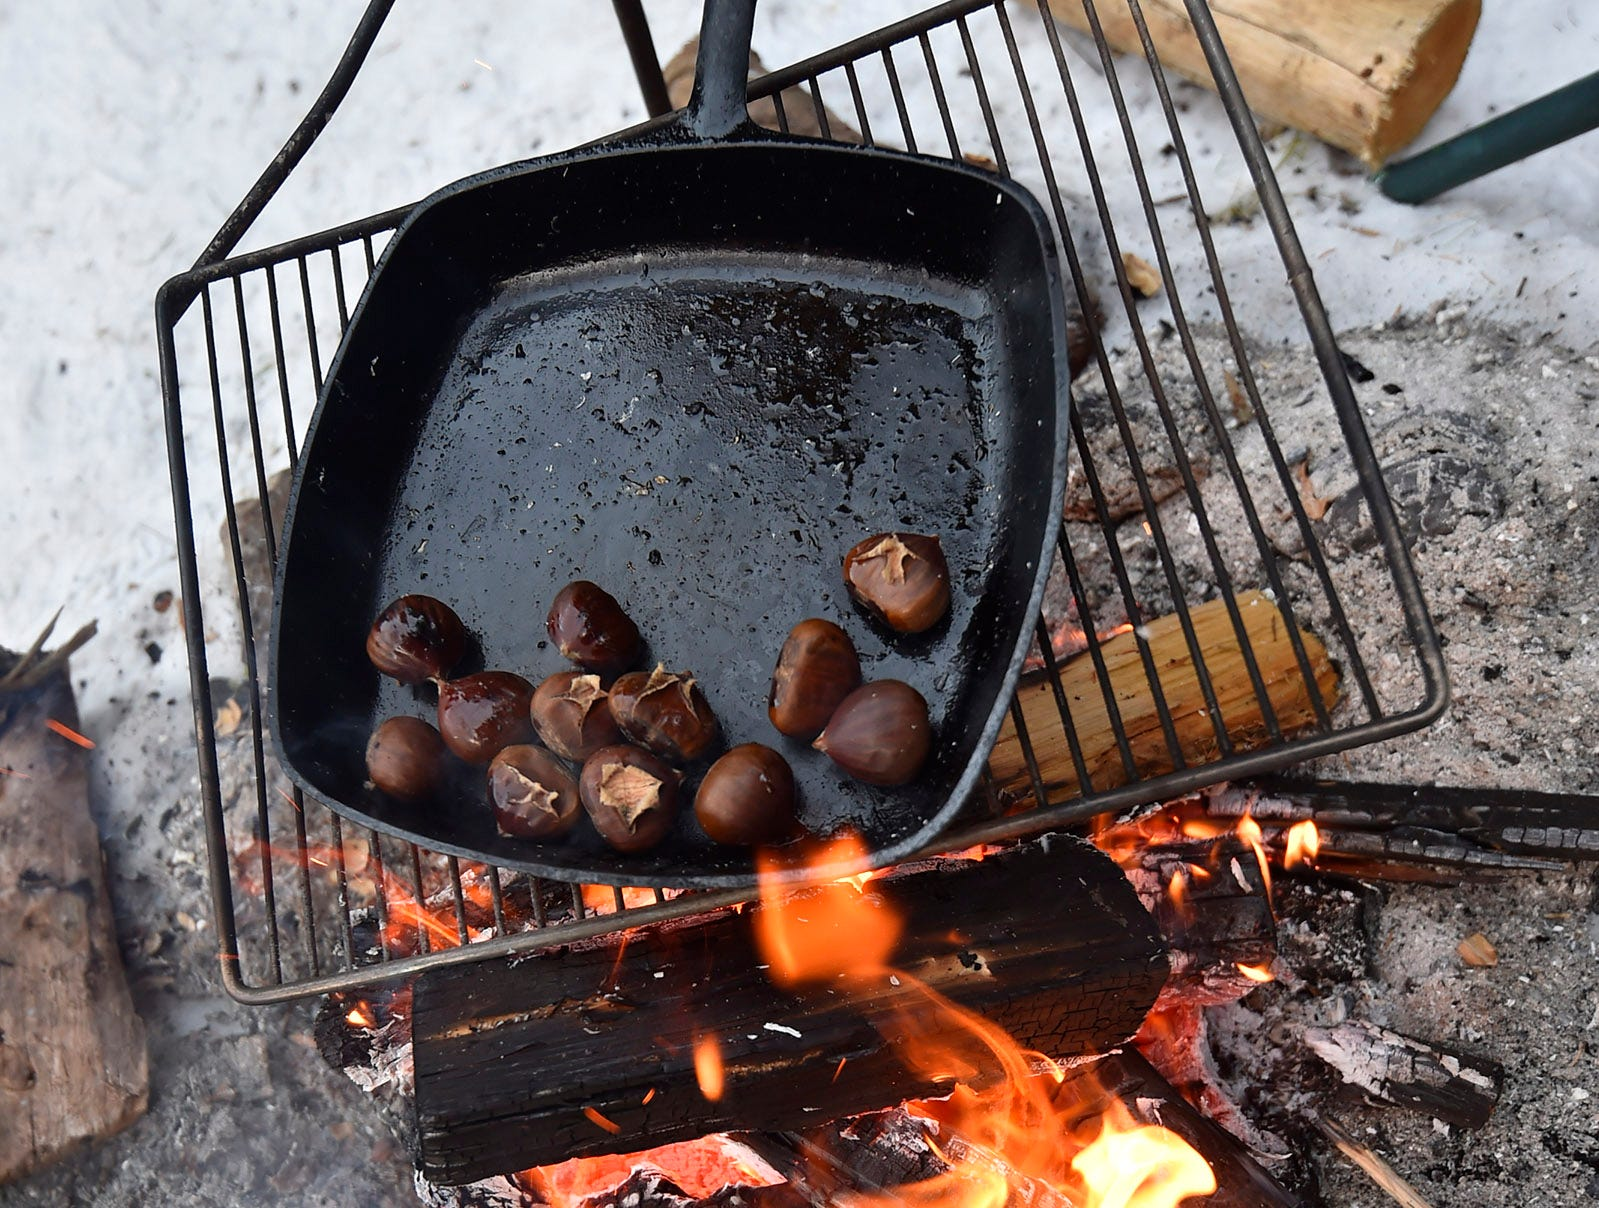 Roasting chestnuts over an open fire during Natural Christmas at The Ridges Sanctuary, Baileys Harbor, on Saturday, Dec. 8, 2018. Tina M. Gohr/USA TODAY NETWORK-Wisconsin